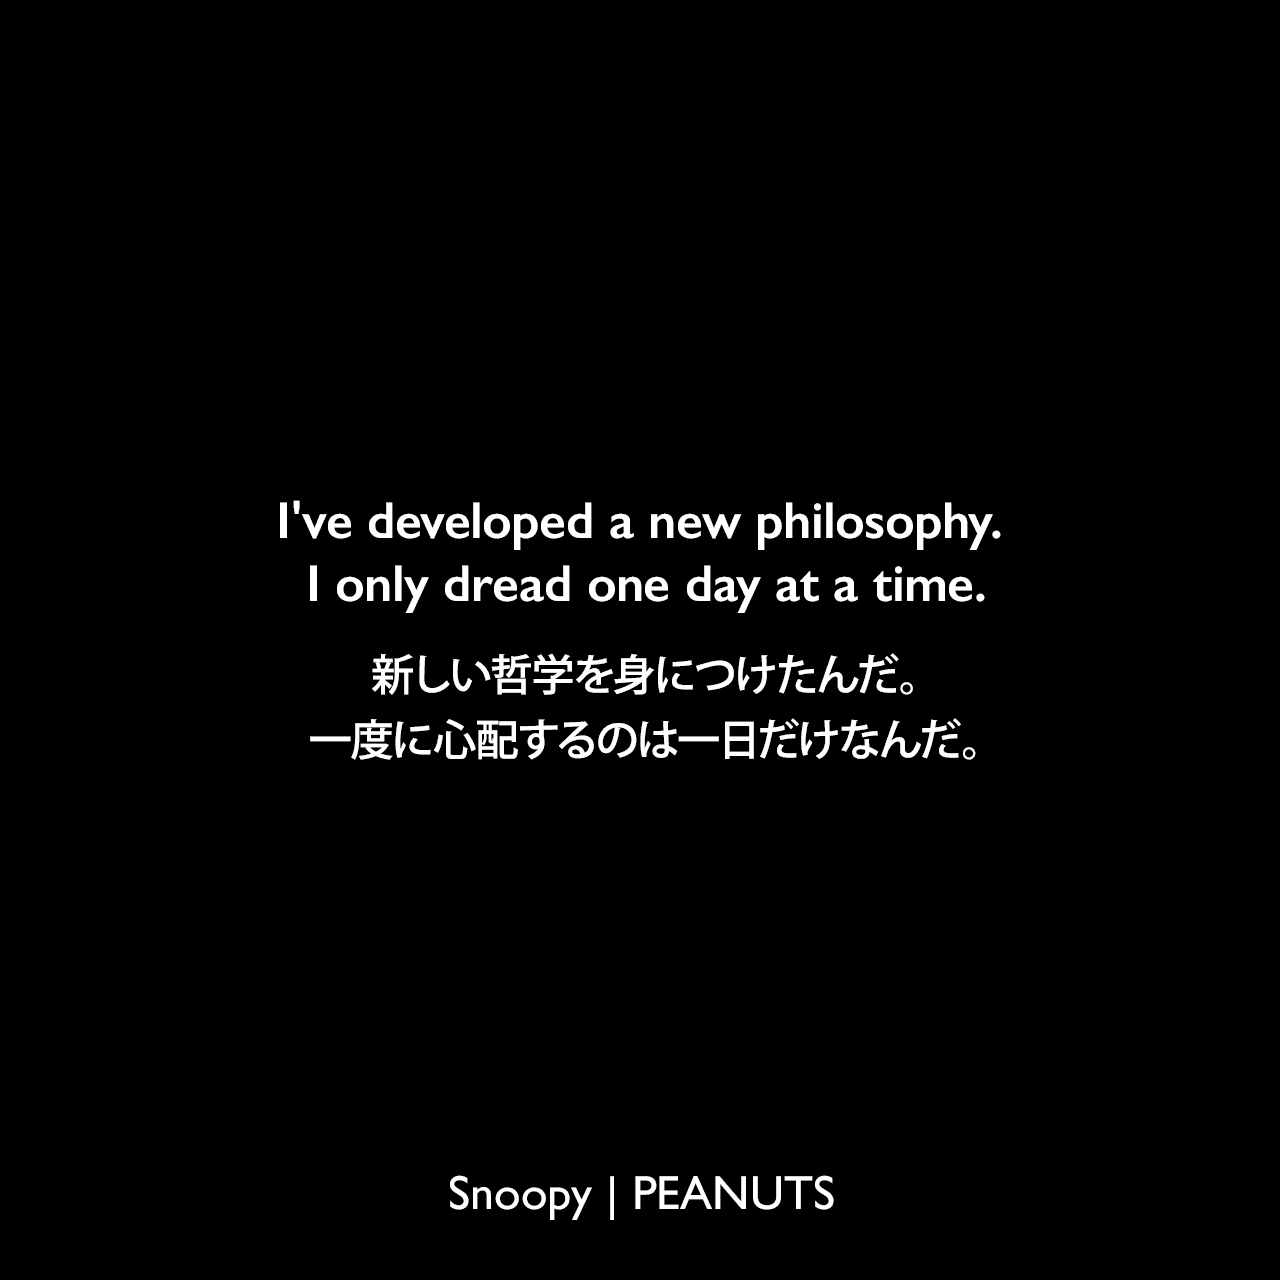 I've developed a new philosophy. I only dread one day at a time.新しい哲学を身につけたんだ。一度に心配するのは一日だけなんだ。- チャーリー・ブラウン (1966年8月8日のコミック)Charles Monroe Schulz